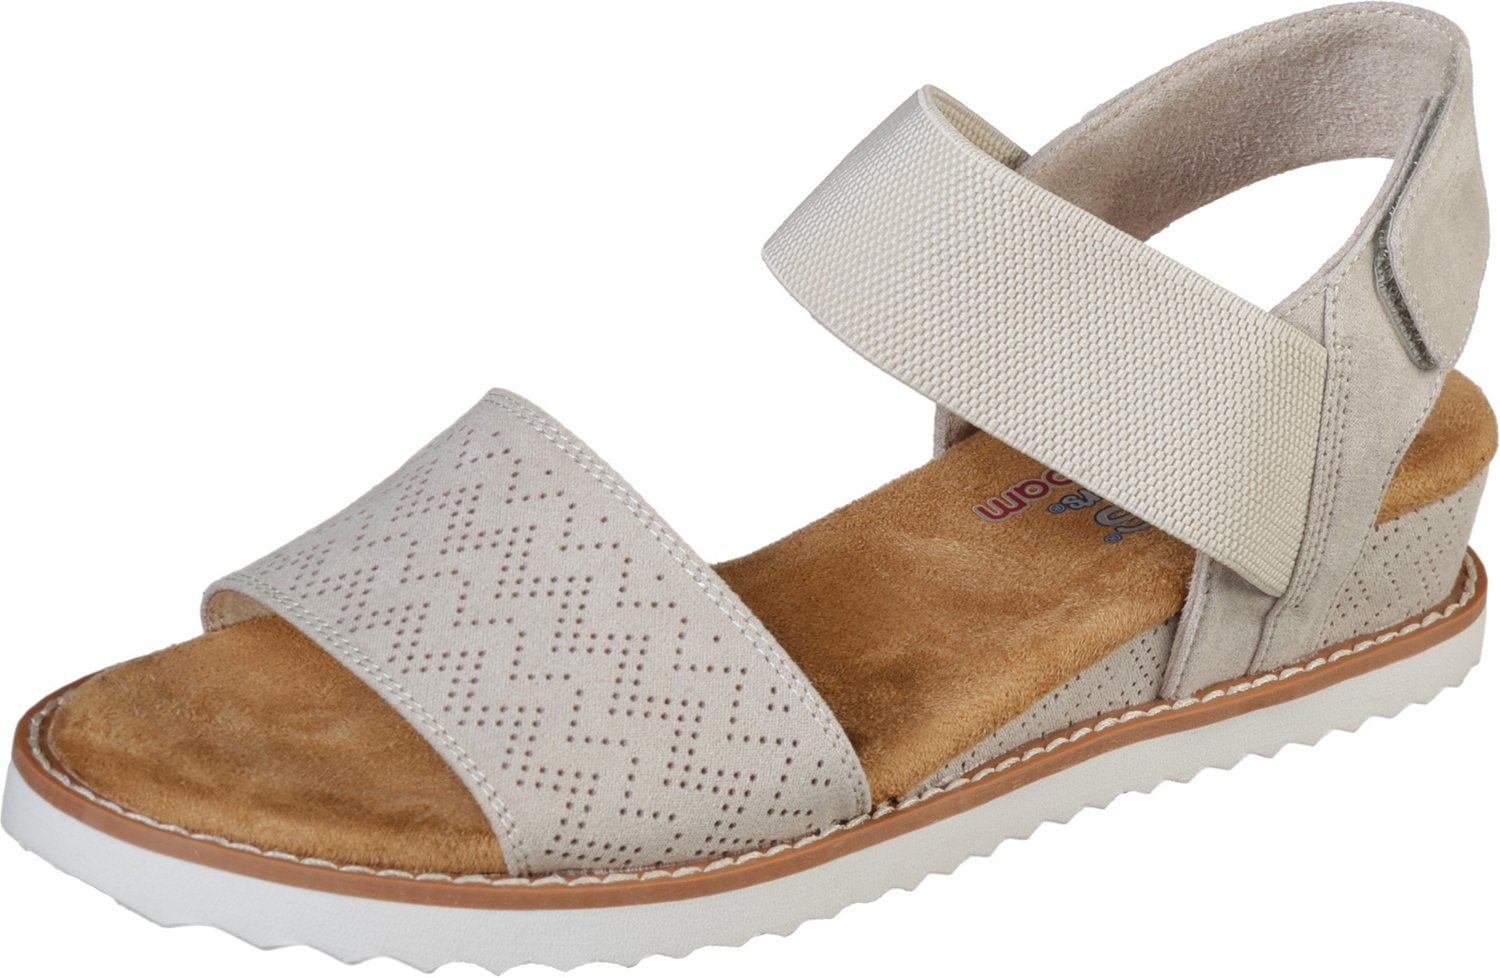 quality design c5a7e fda39 Display product reviews for SKECHERS Women s BOBS Desert Kiss Sandals